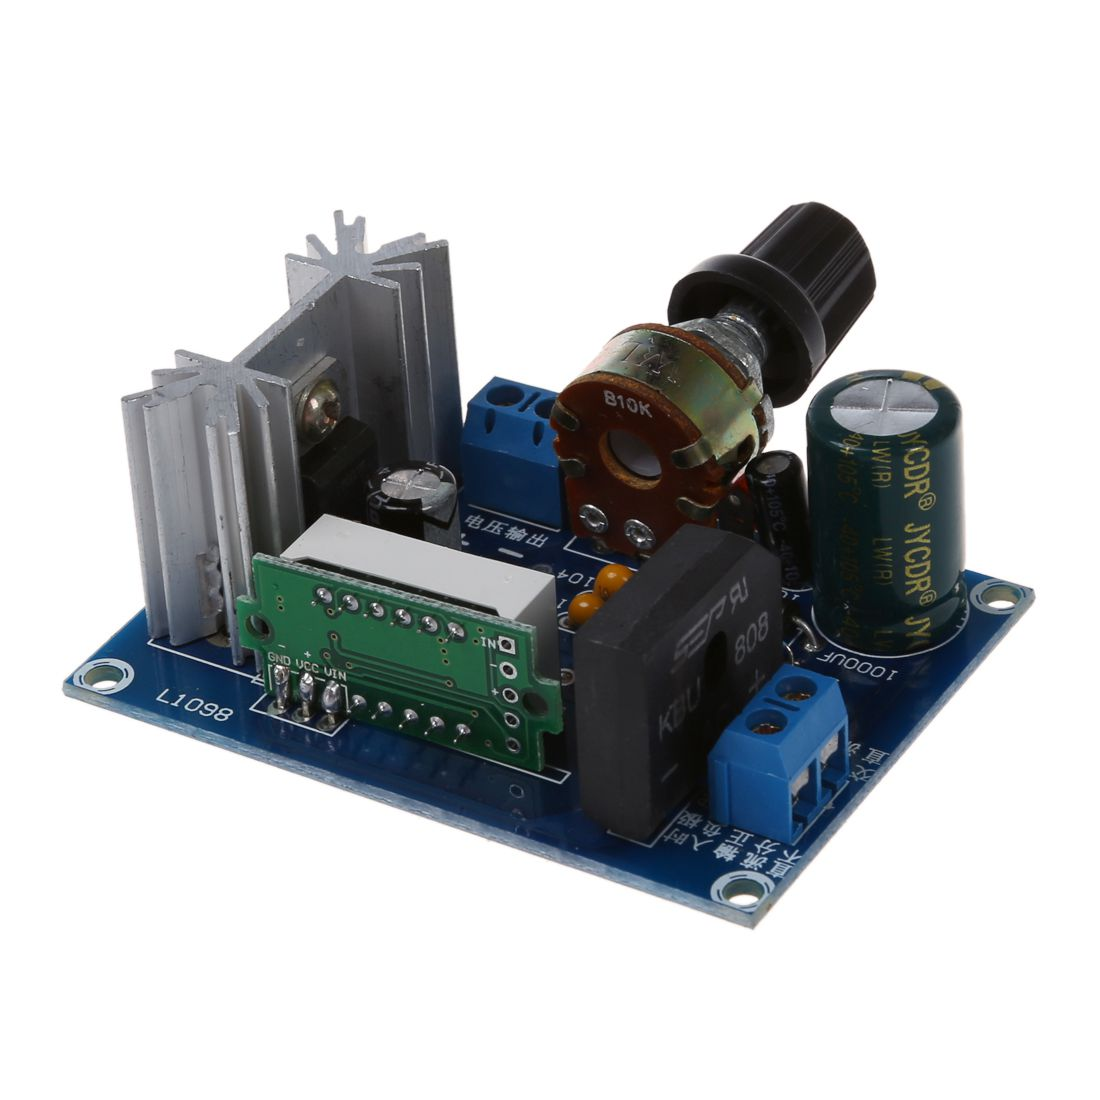 Lm317 Adjustable Voltage Regulator Step Down Power Supply Module Led Loss Comparison With The Linear Meter O6q4